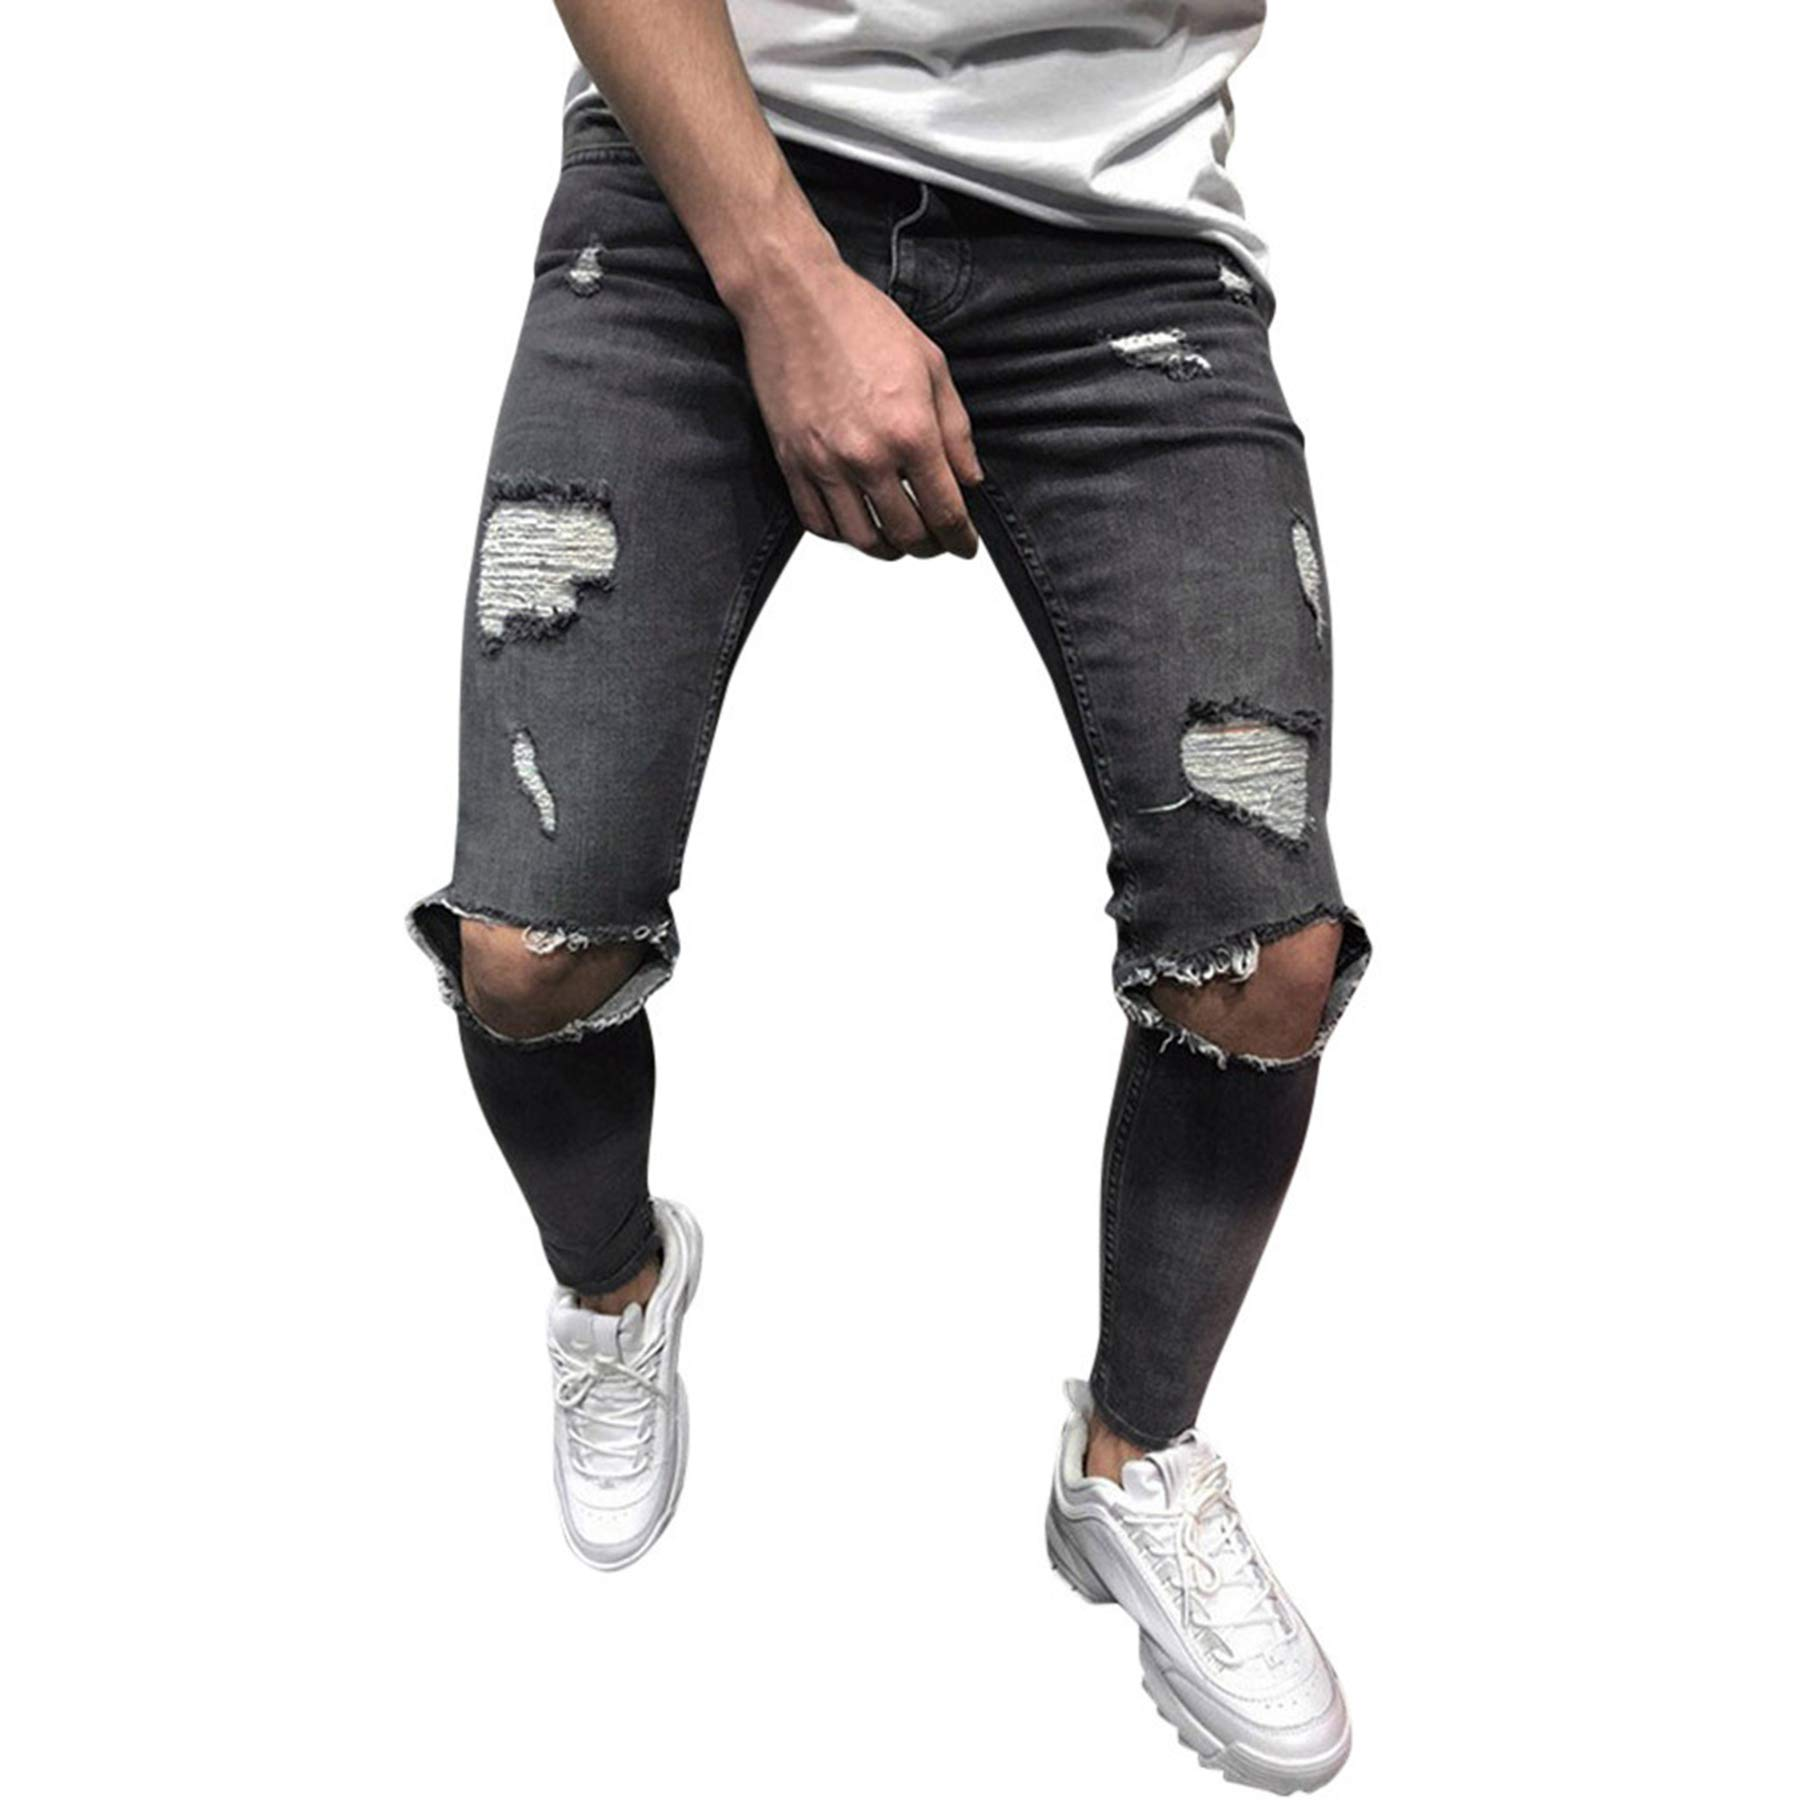 Side Stripe Biker Jeans for Men, Teen Boy Washed Distressed Destroyed Skinny Jeans Stretchy Holes Ripped Denim Pants (Gray-1, 31) by Fanteecy